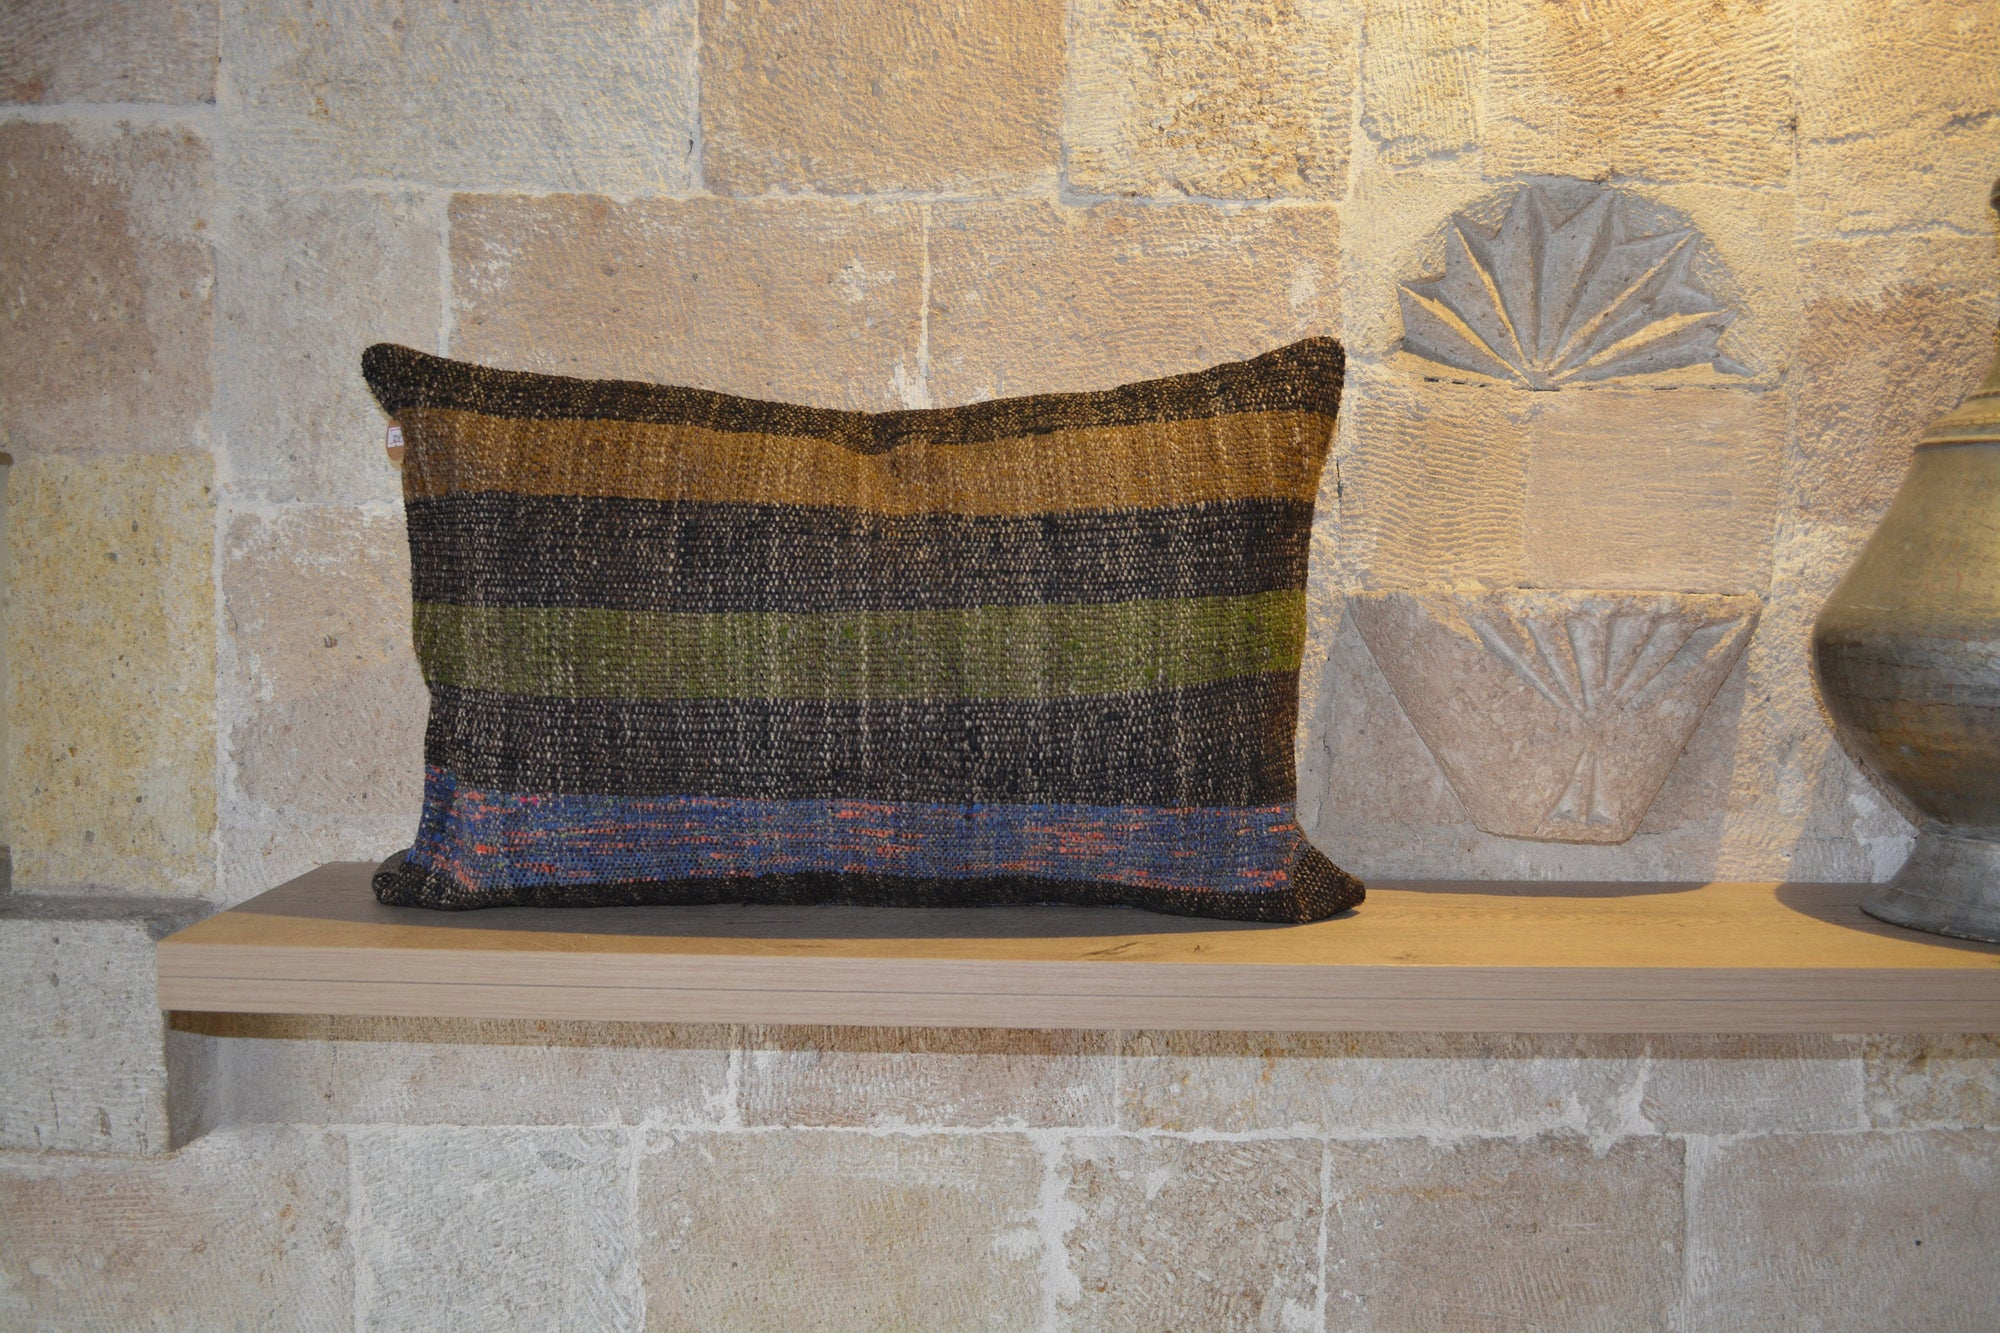 "Authentic Pillow, Kilim Pillow Case, 40 X 60 Kilim Pillow, Berber Pillow, Kelim Pillow Cover,          16""x24"" - EA216"